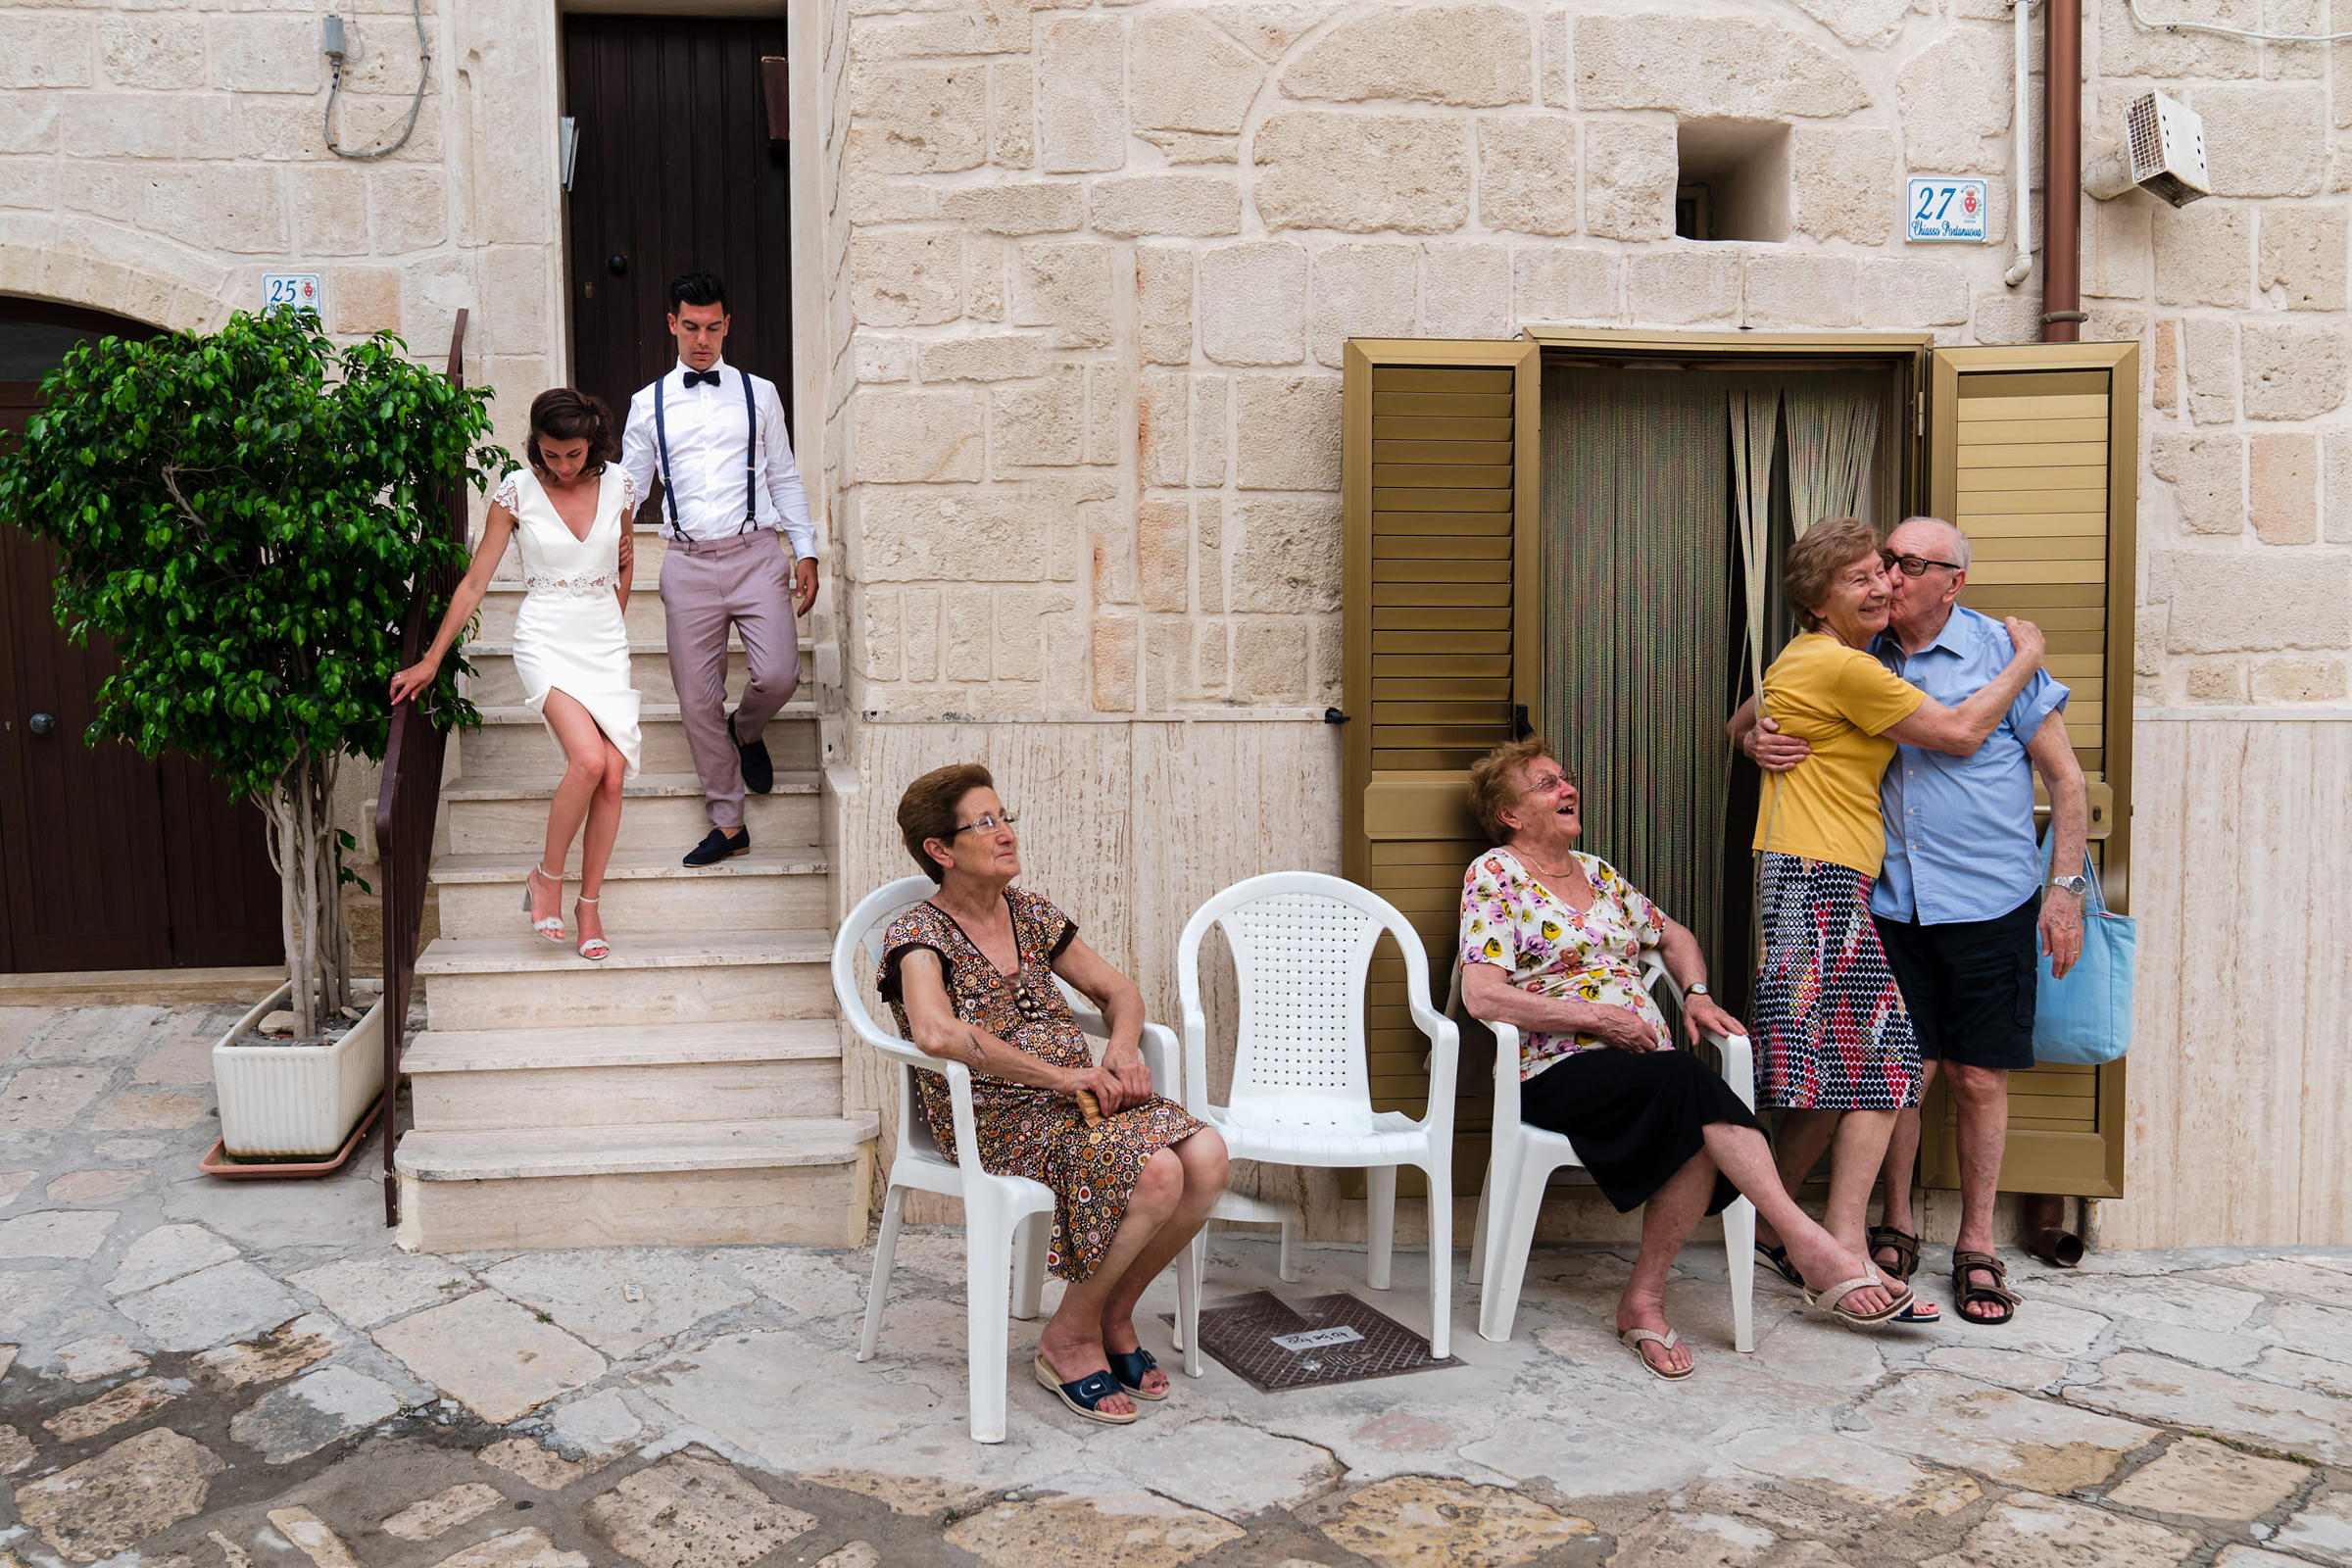 Bride and groom walk down stairs as strangers kiss on street, photo by Philippe Swiggers